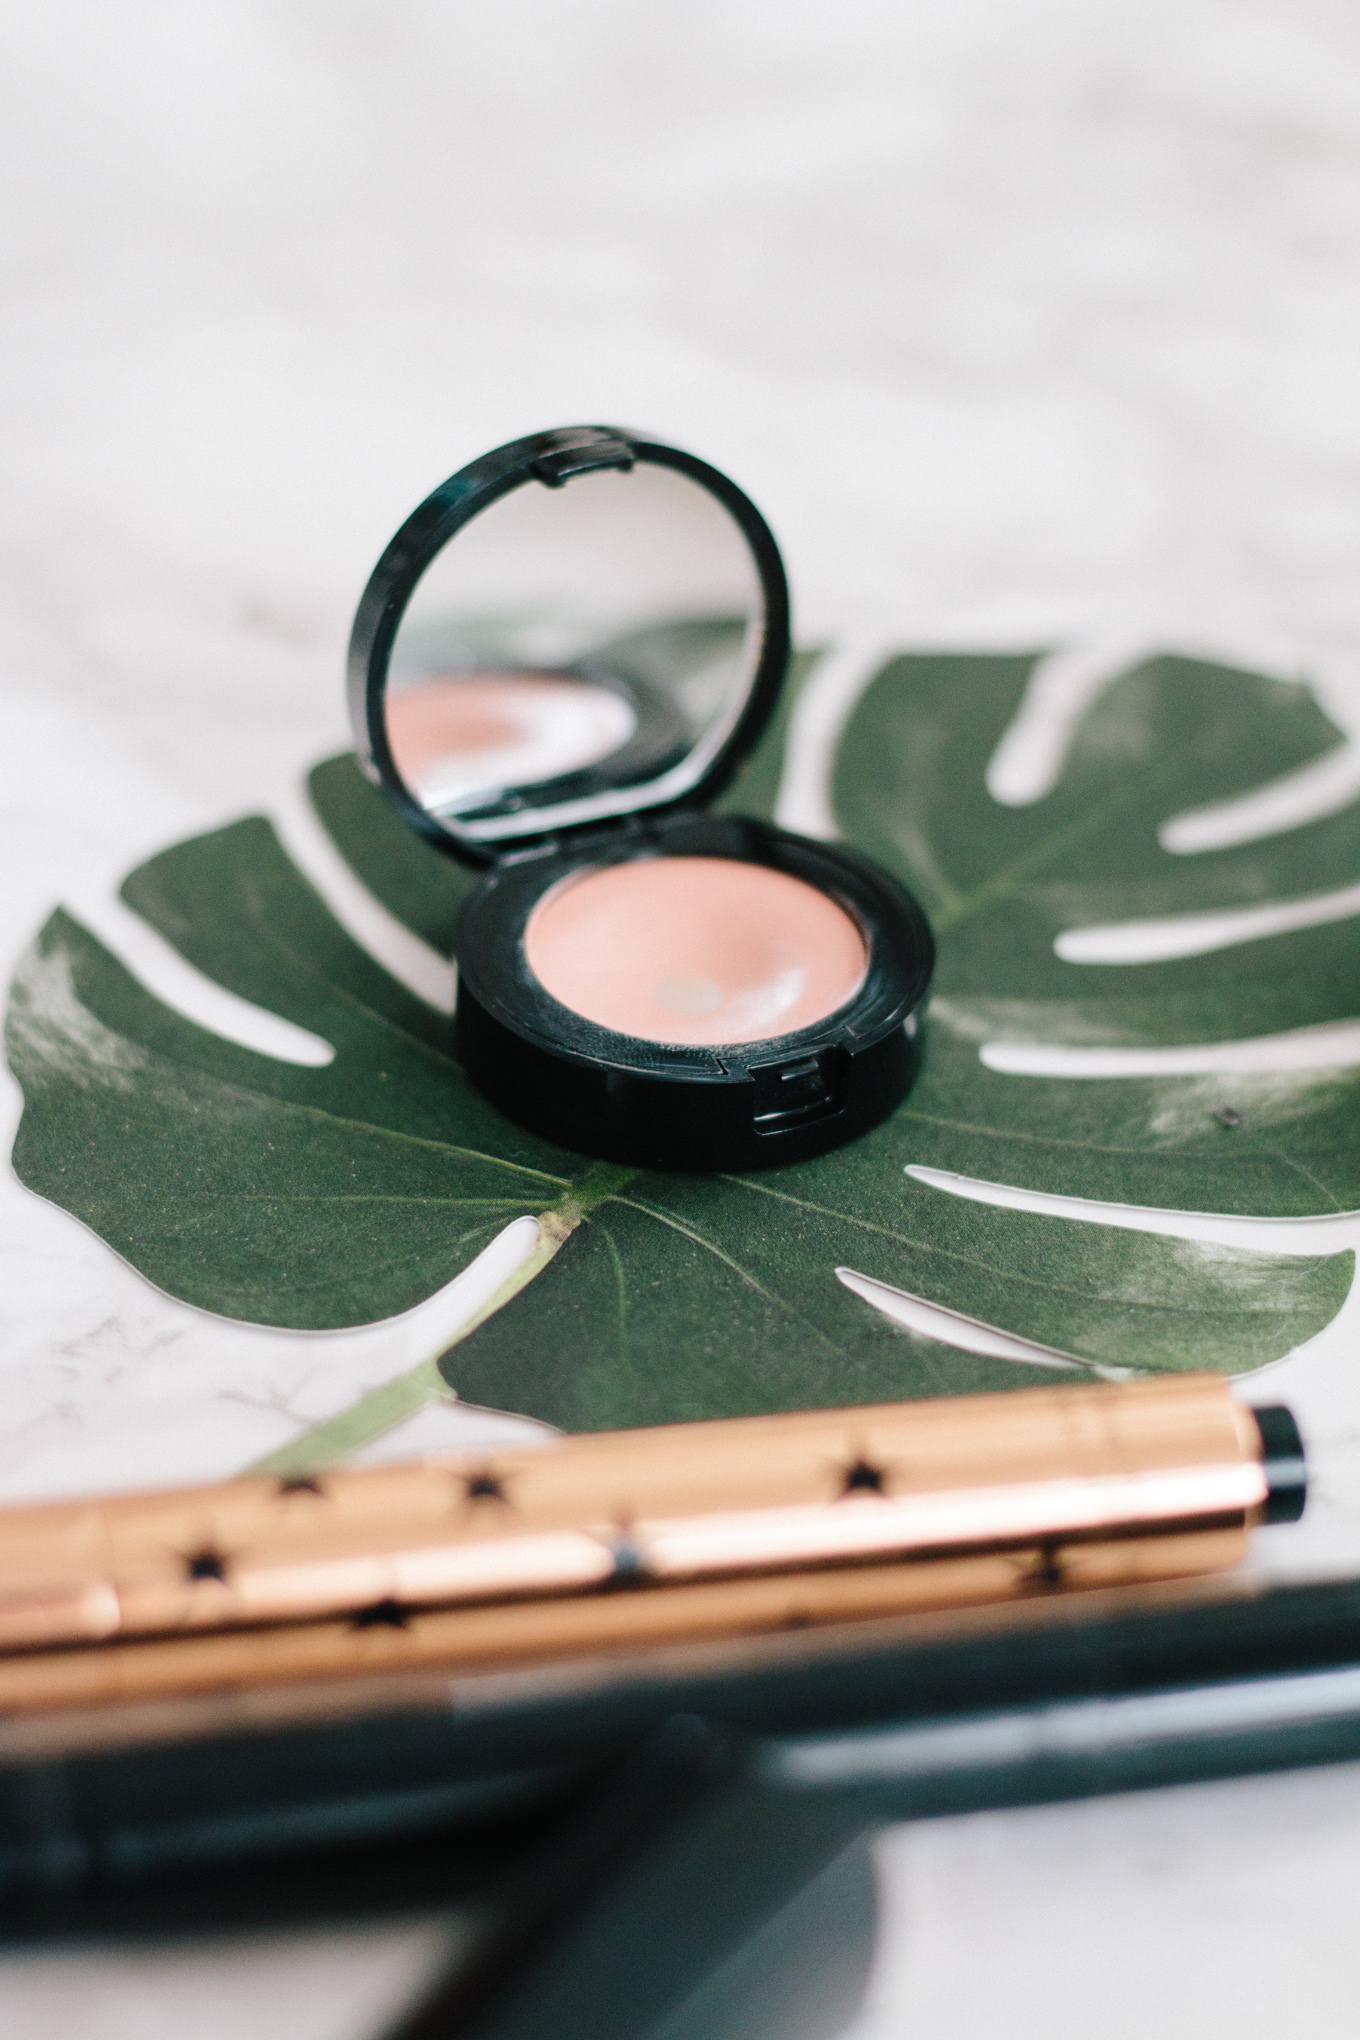 Beauty Products: Conceal & Cover | The Daily Dose